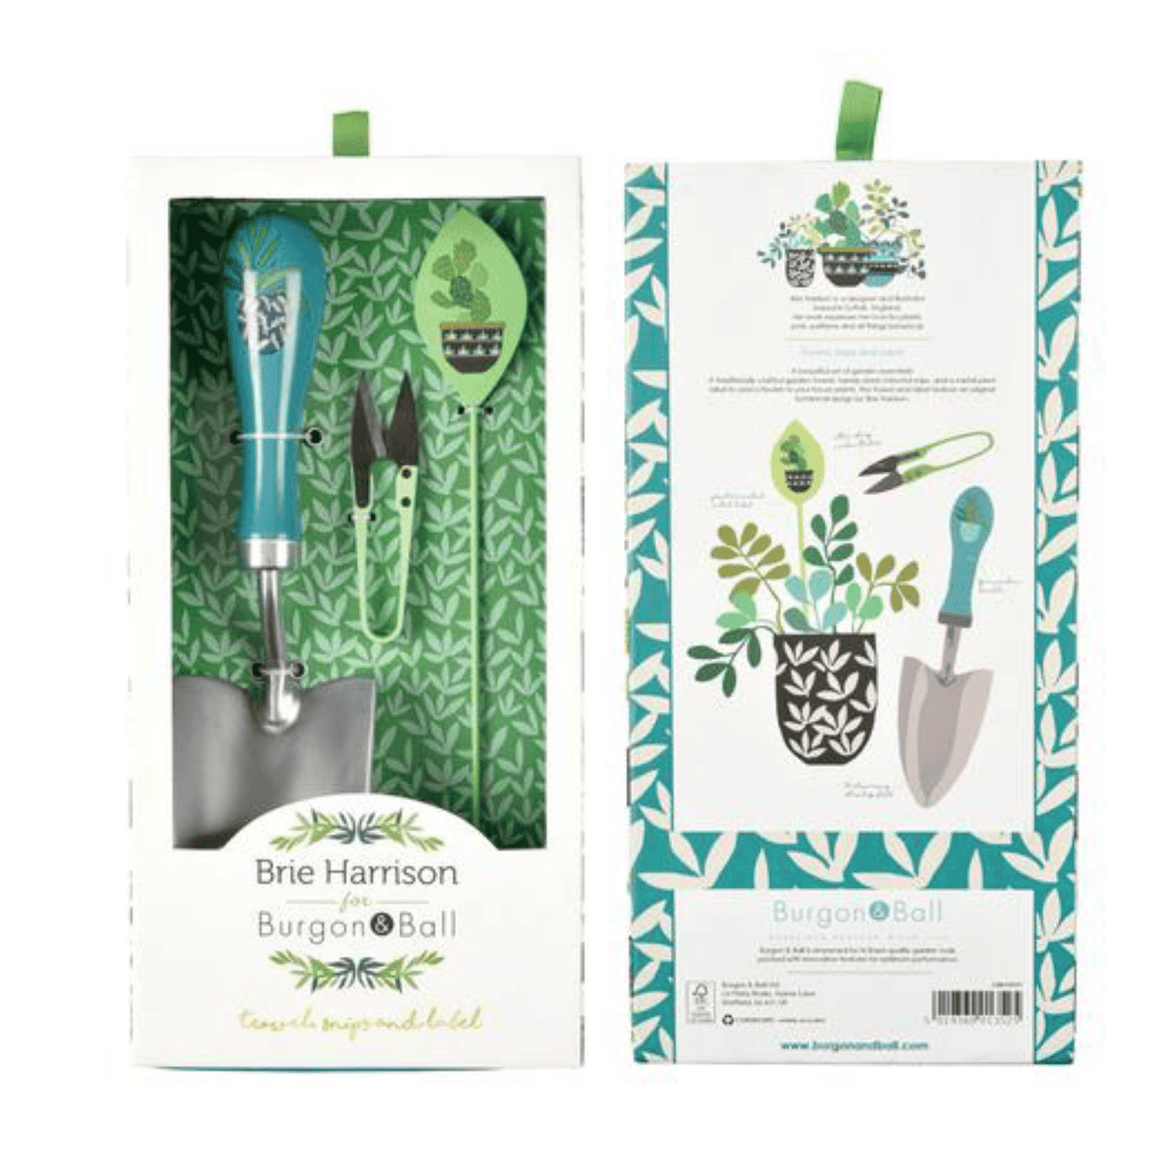 BRIE HARRISON-TROWEL SNIPS AND LABEL SET - Bowerbird on Argyle